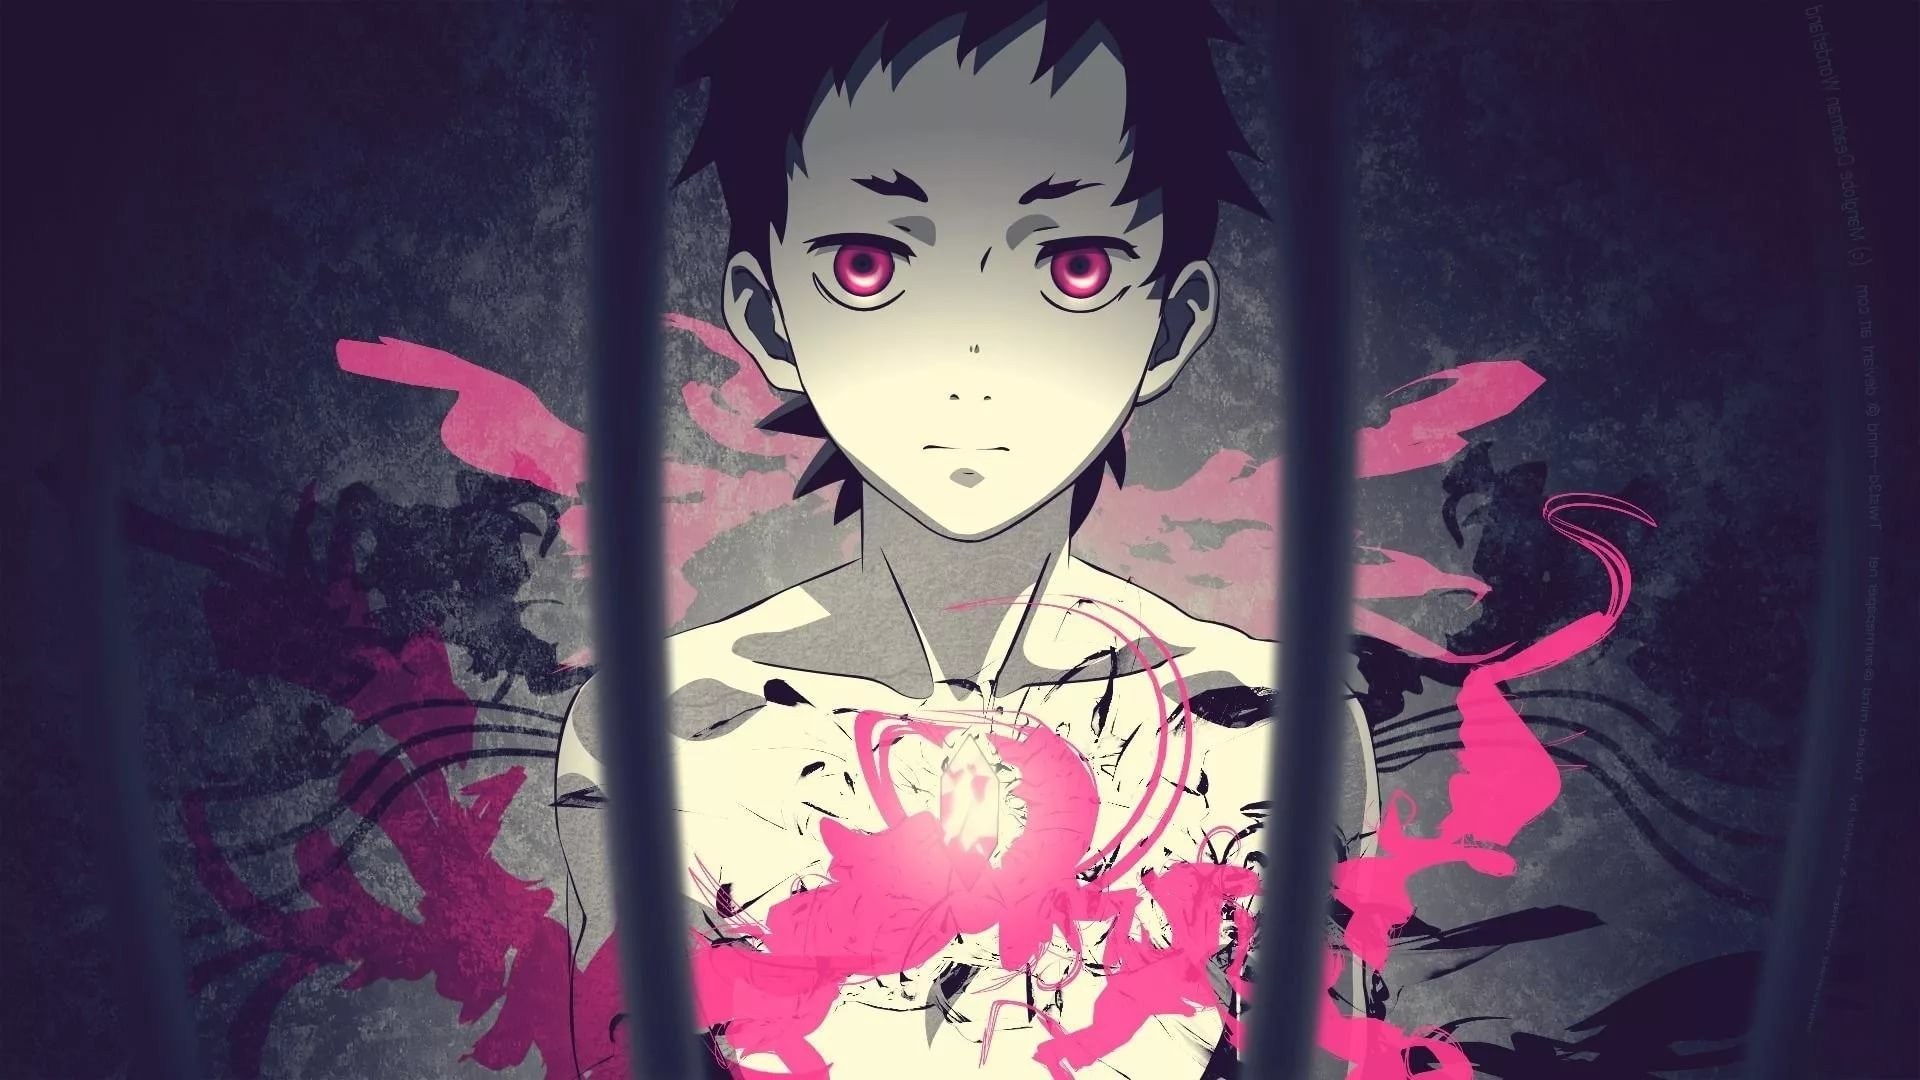 1920x1080 ... Wallpaper Deadman Wonderland HD images Deadman Wonderland HD pics ...